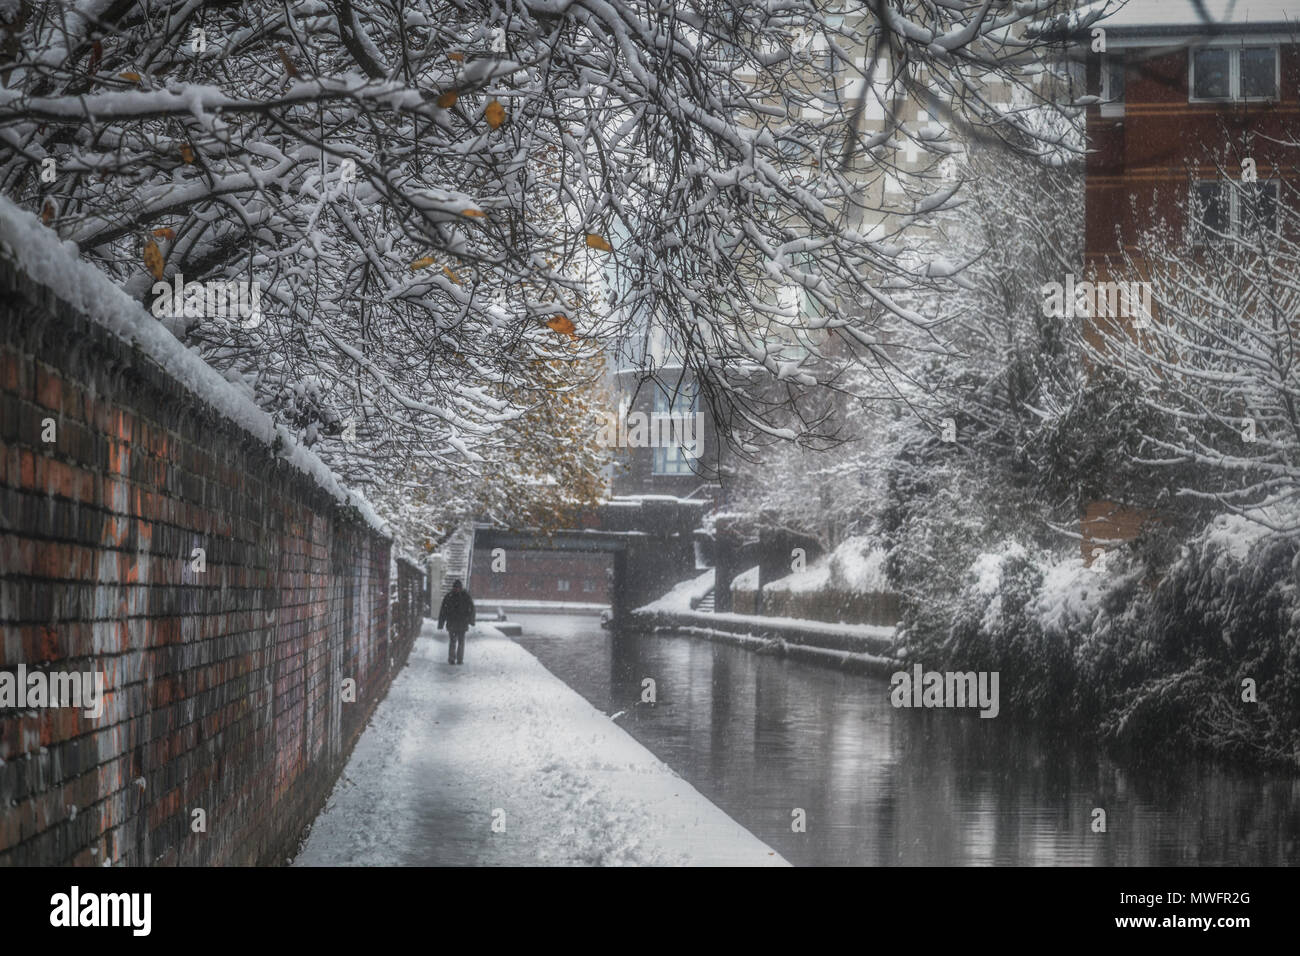 A snow storm hits Gas Street and the canals that lead into the basin. - Stock Image